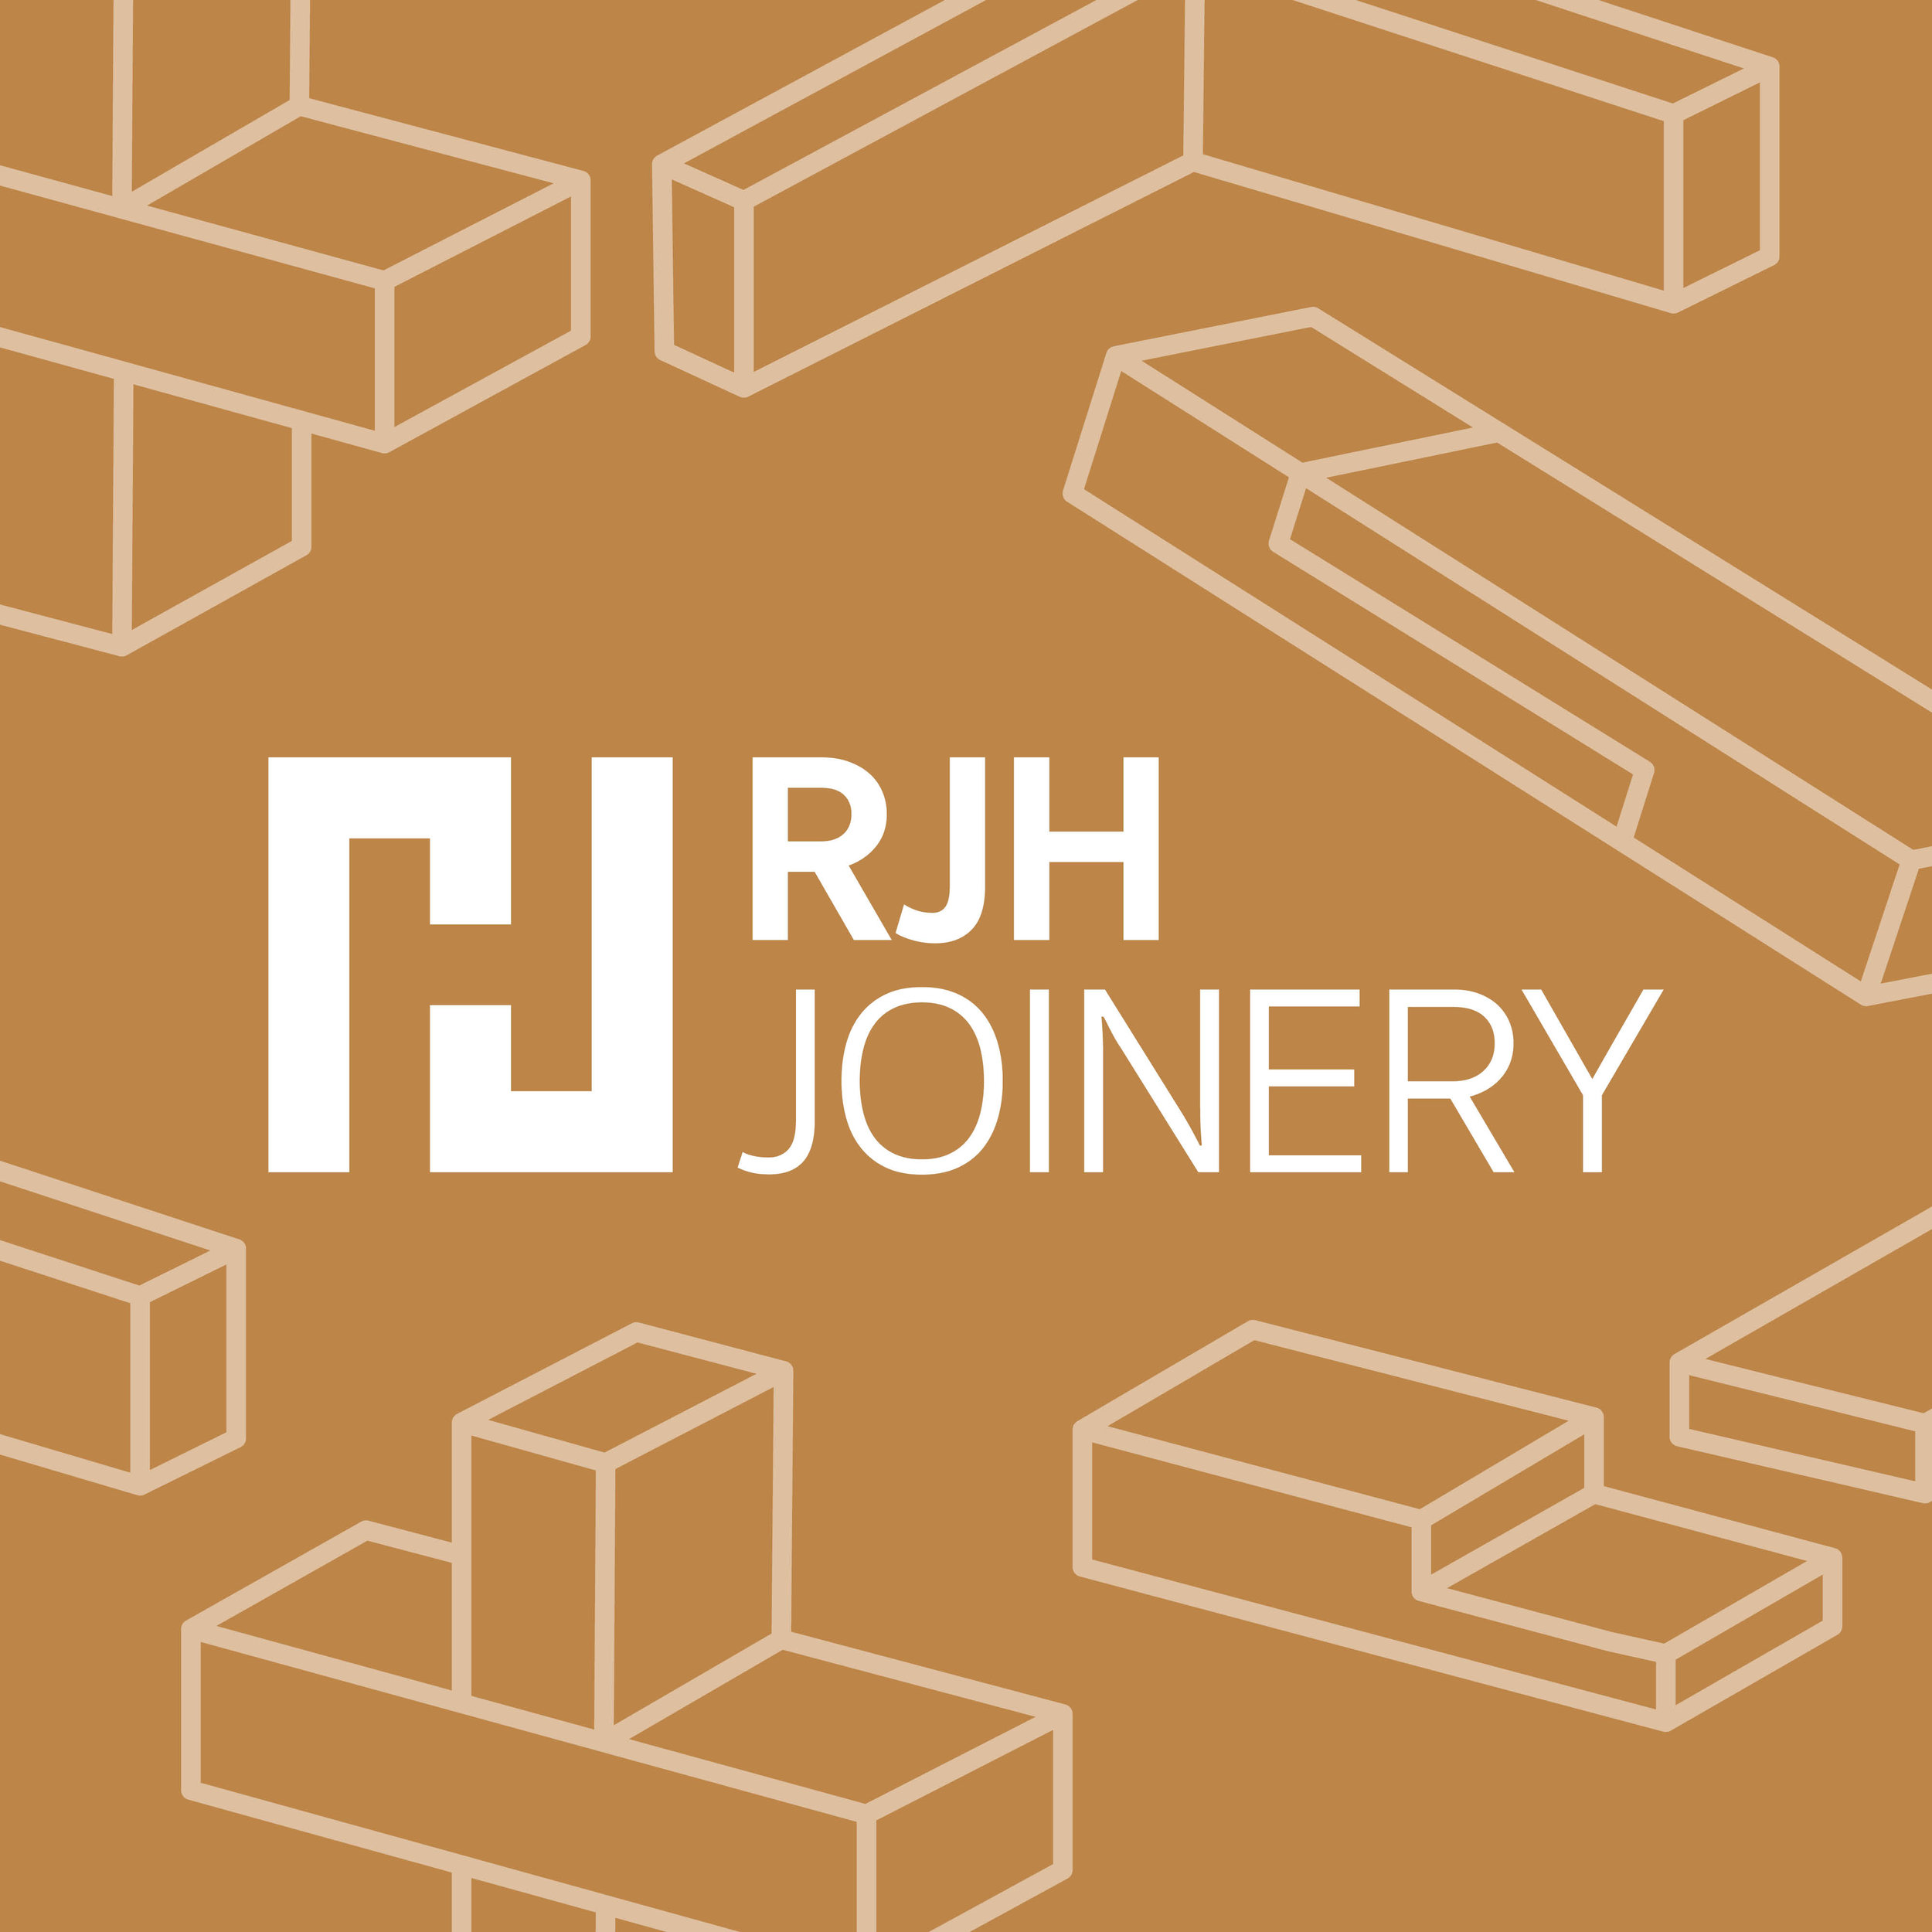 RJH Joinery - Illustration - Branding Development - Graphic Design Sheffield